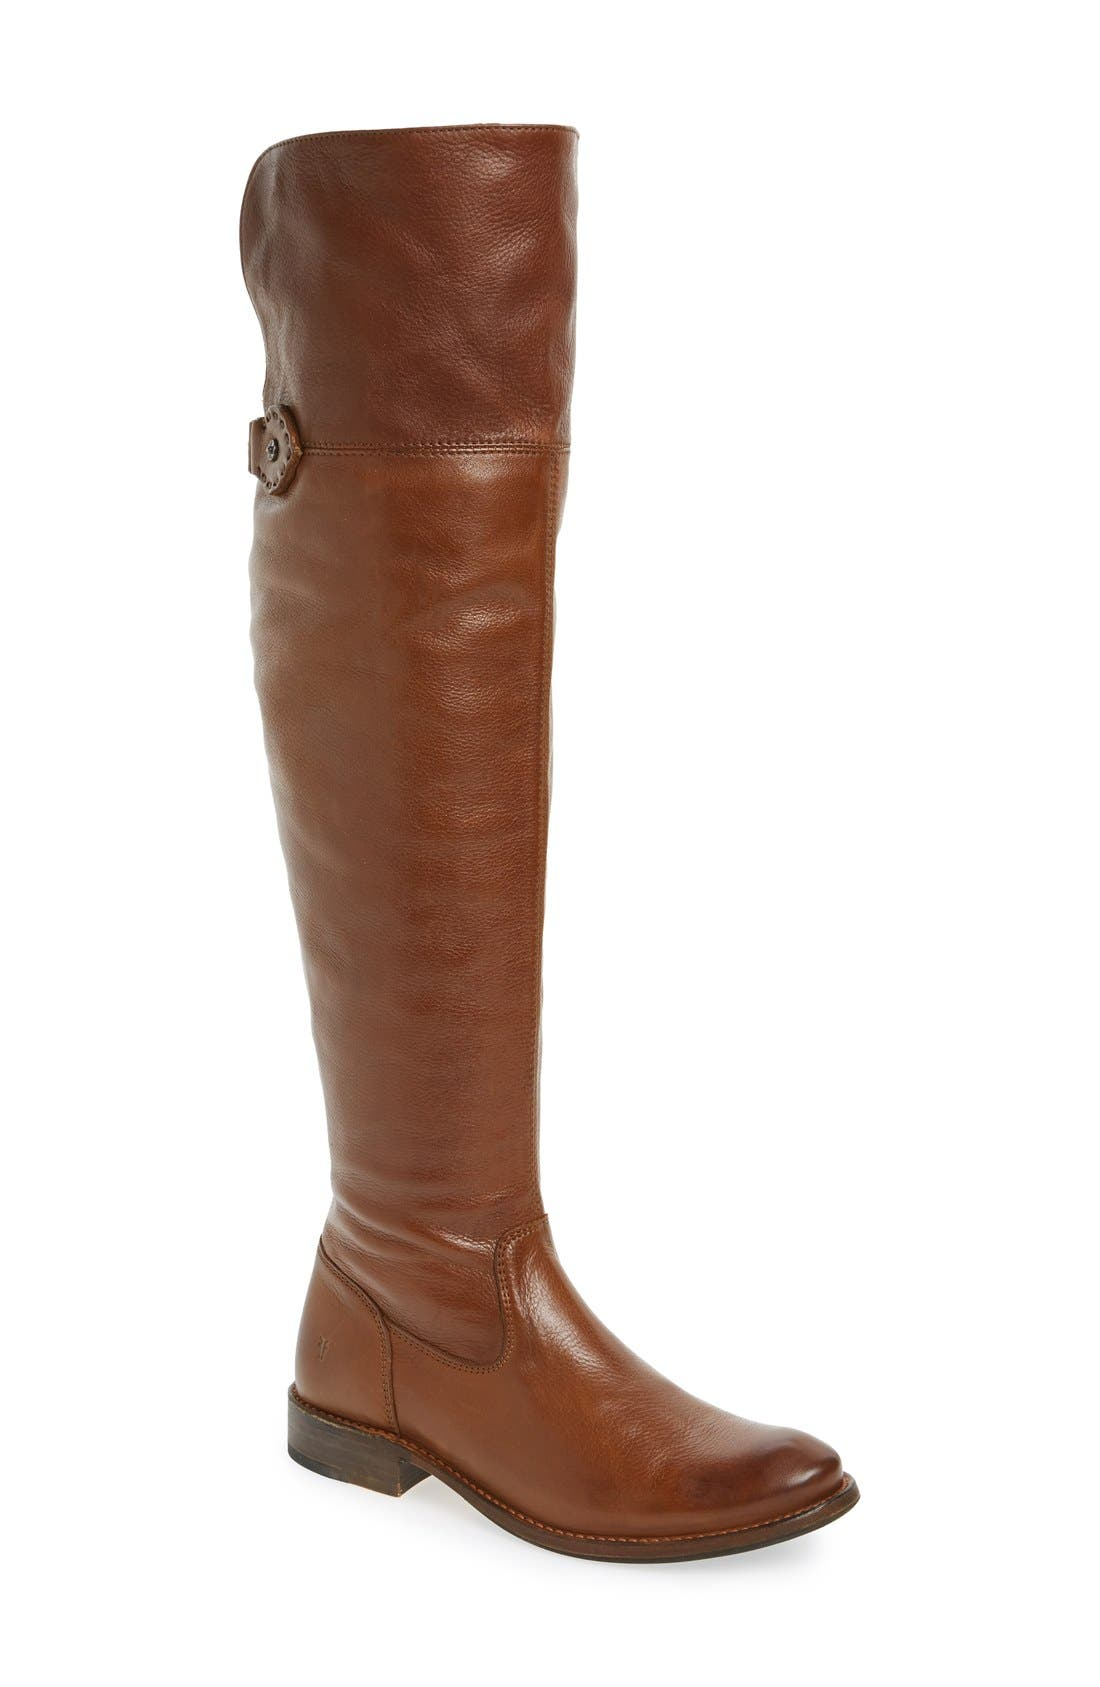 Alternate Image 1 Selected - Frye 'Shirley' Over the Knee Boot (Women)